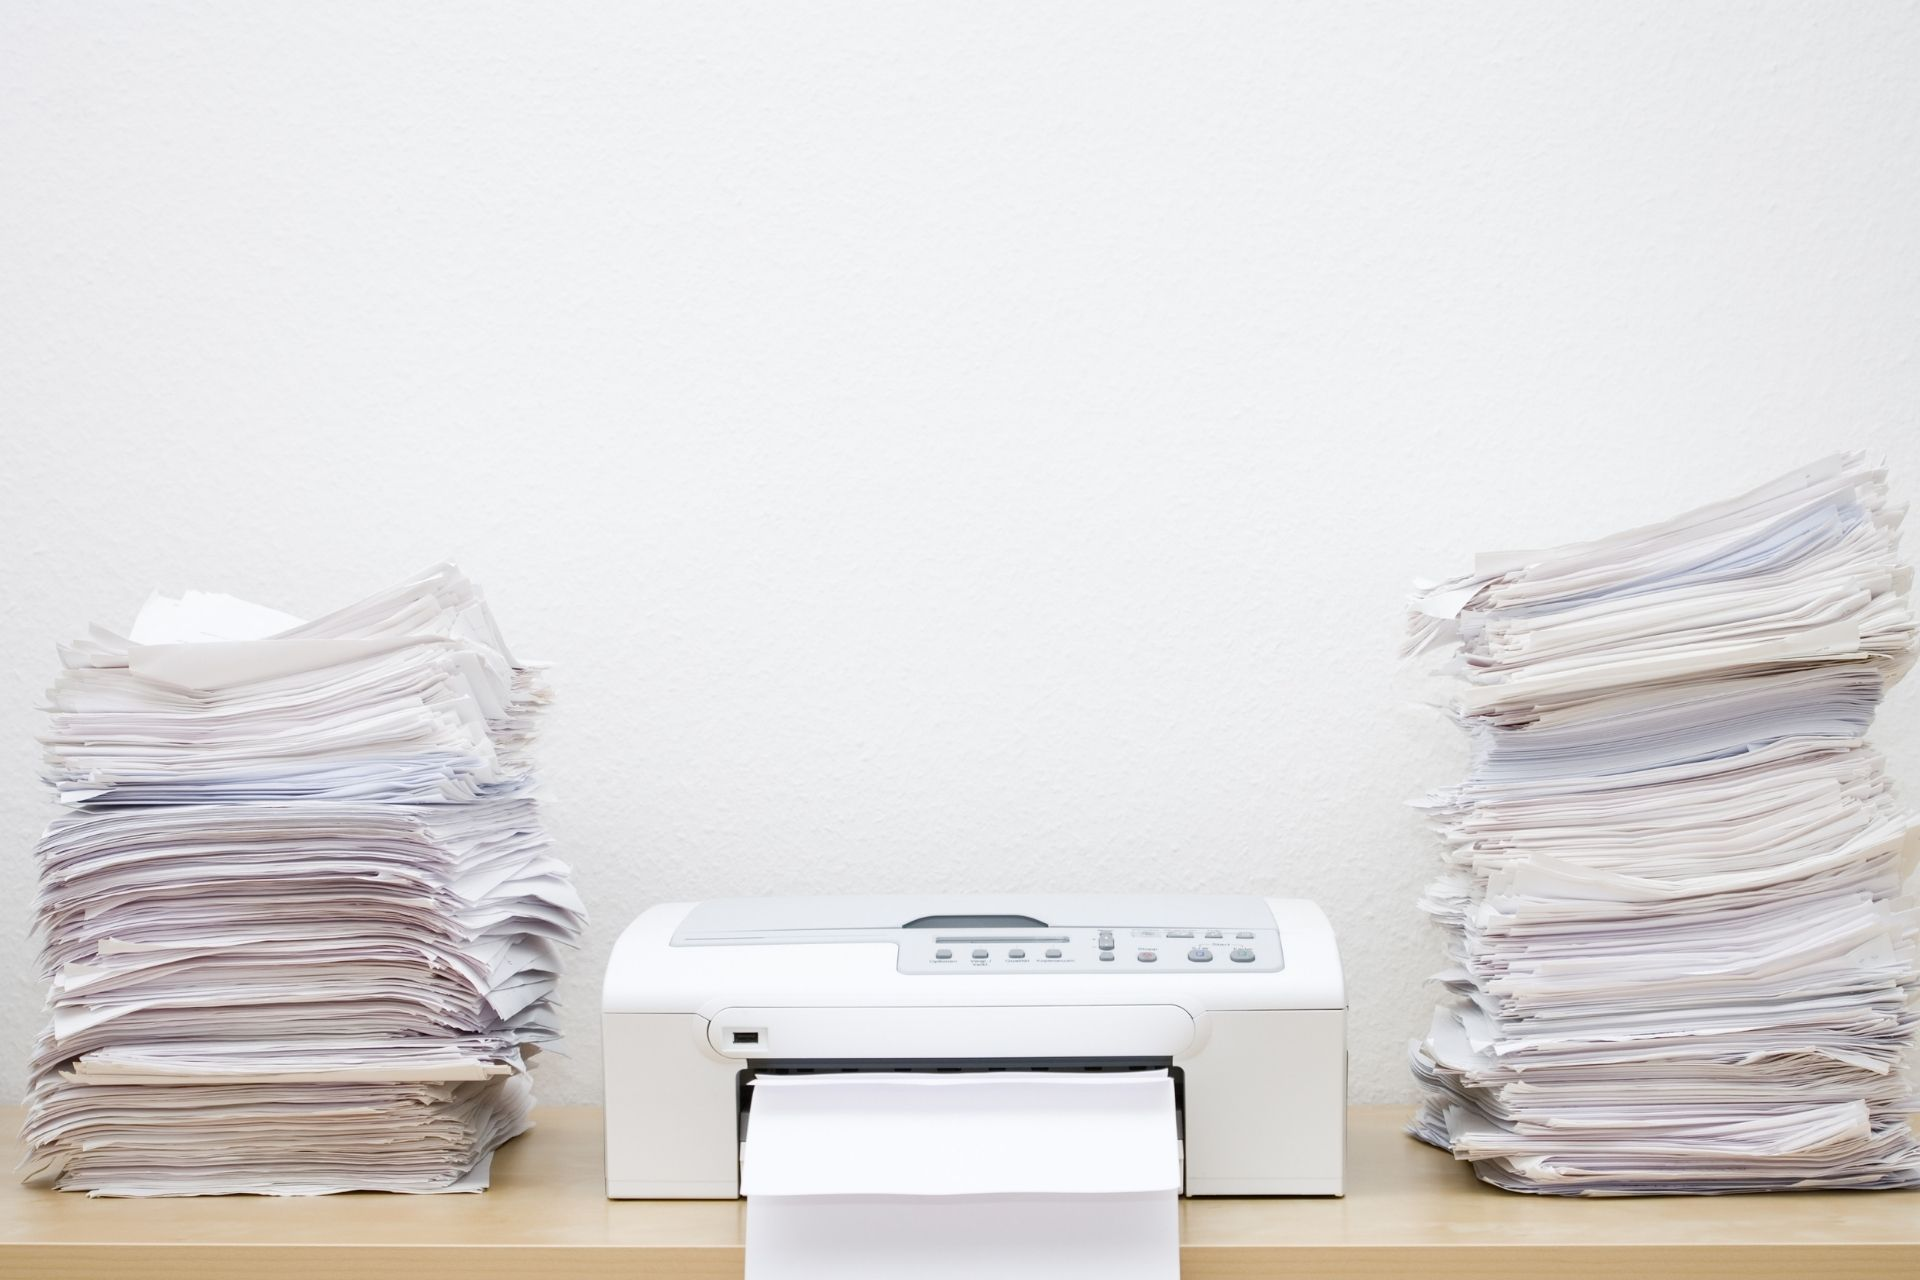 A printer and stacks of paper on a table